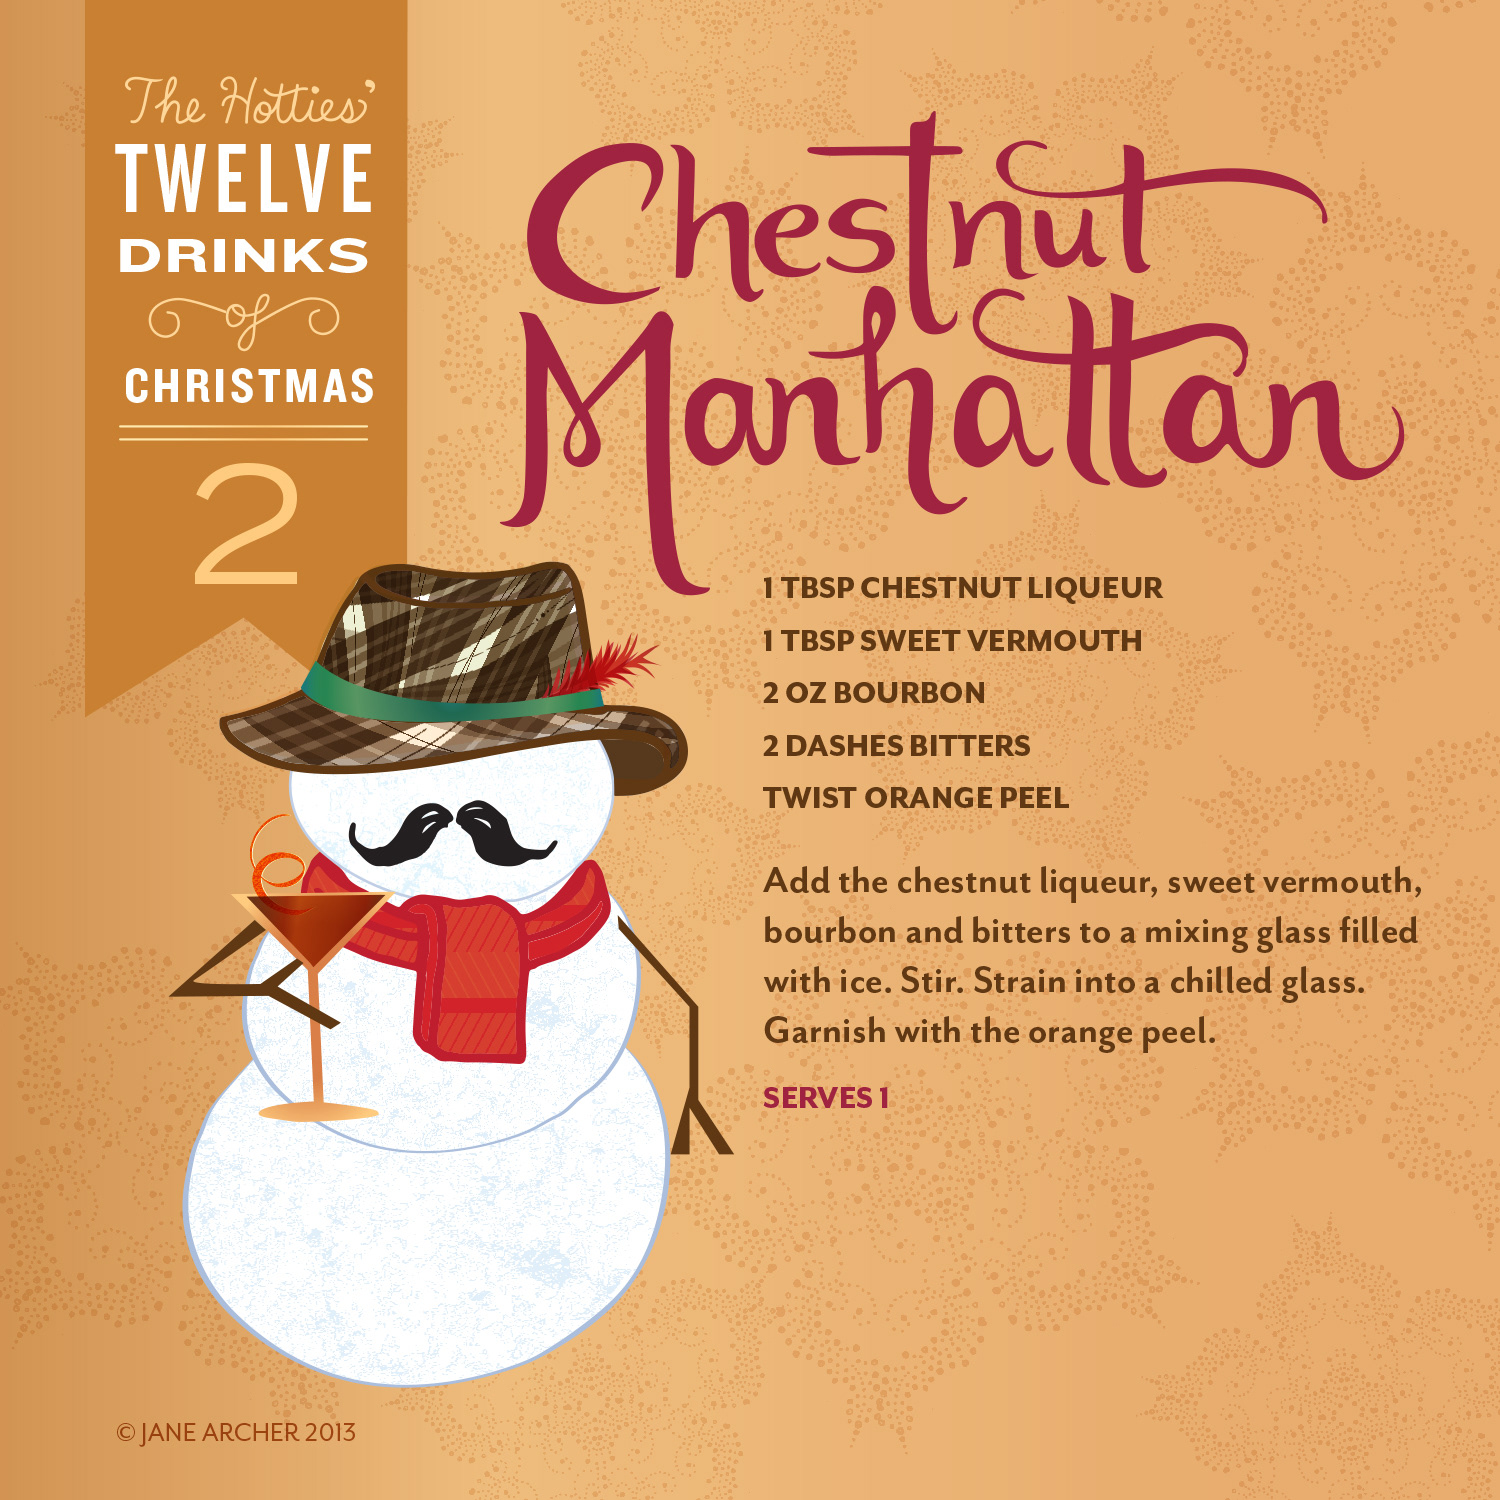 jane archer the hotties 12 drinks of christmas - 12 Drinks Of Christmas